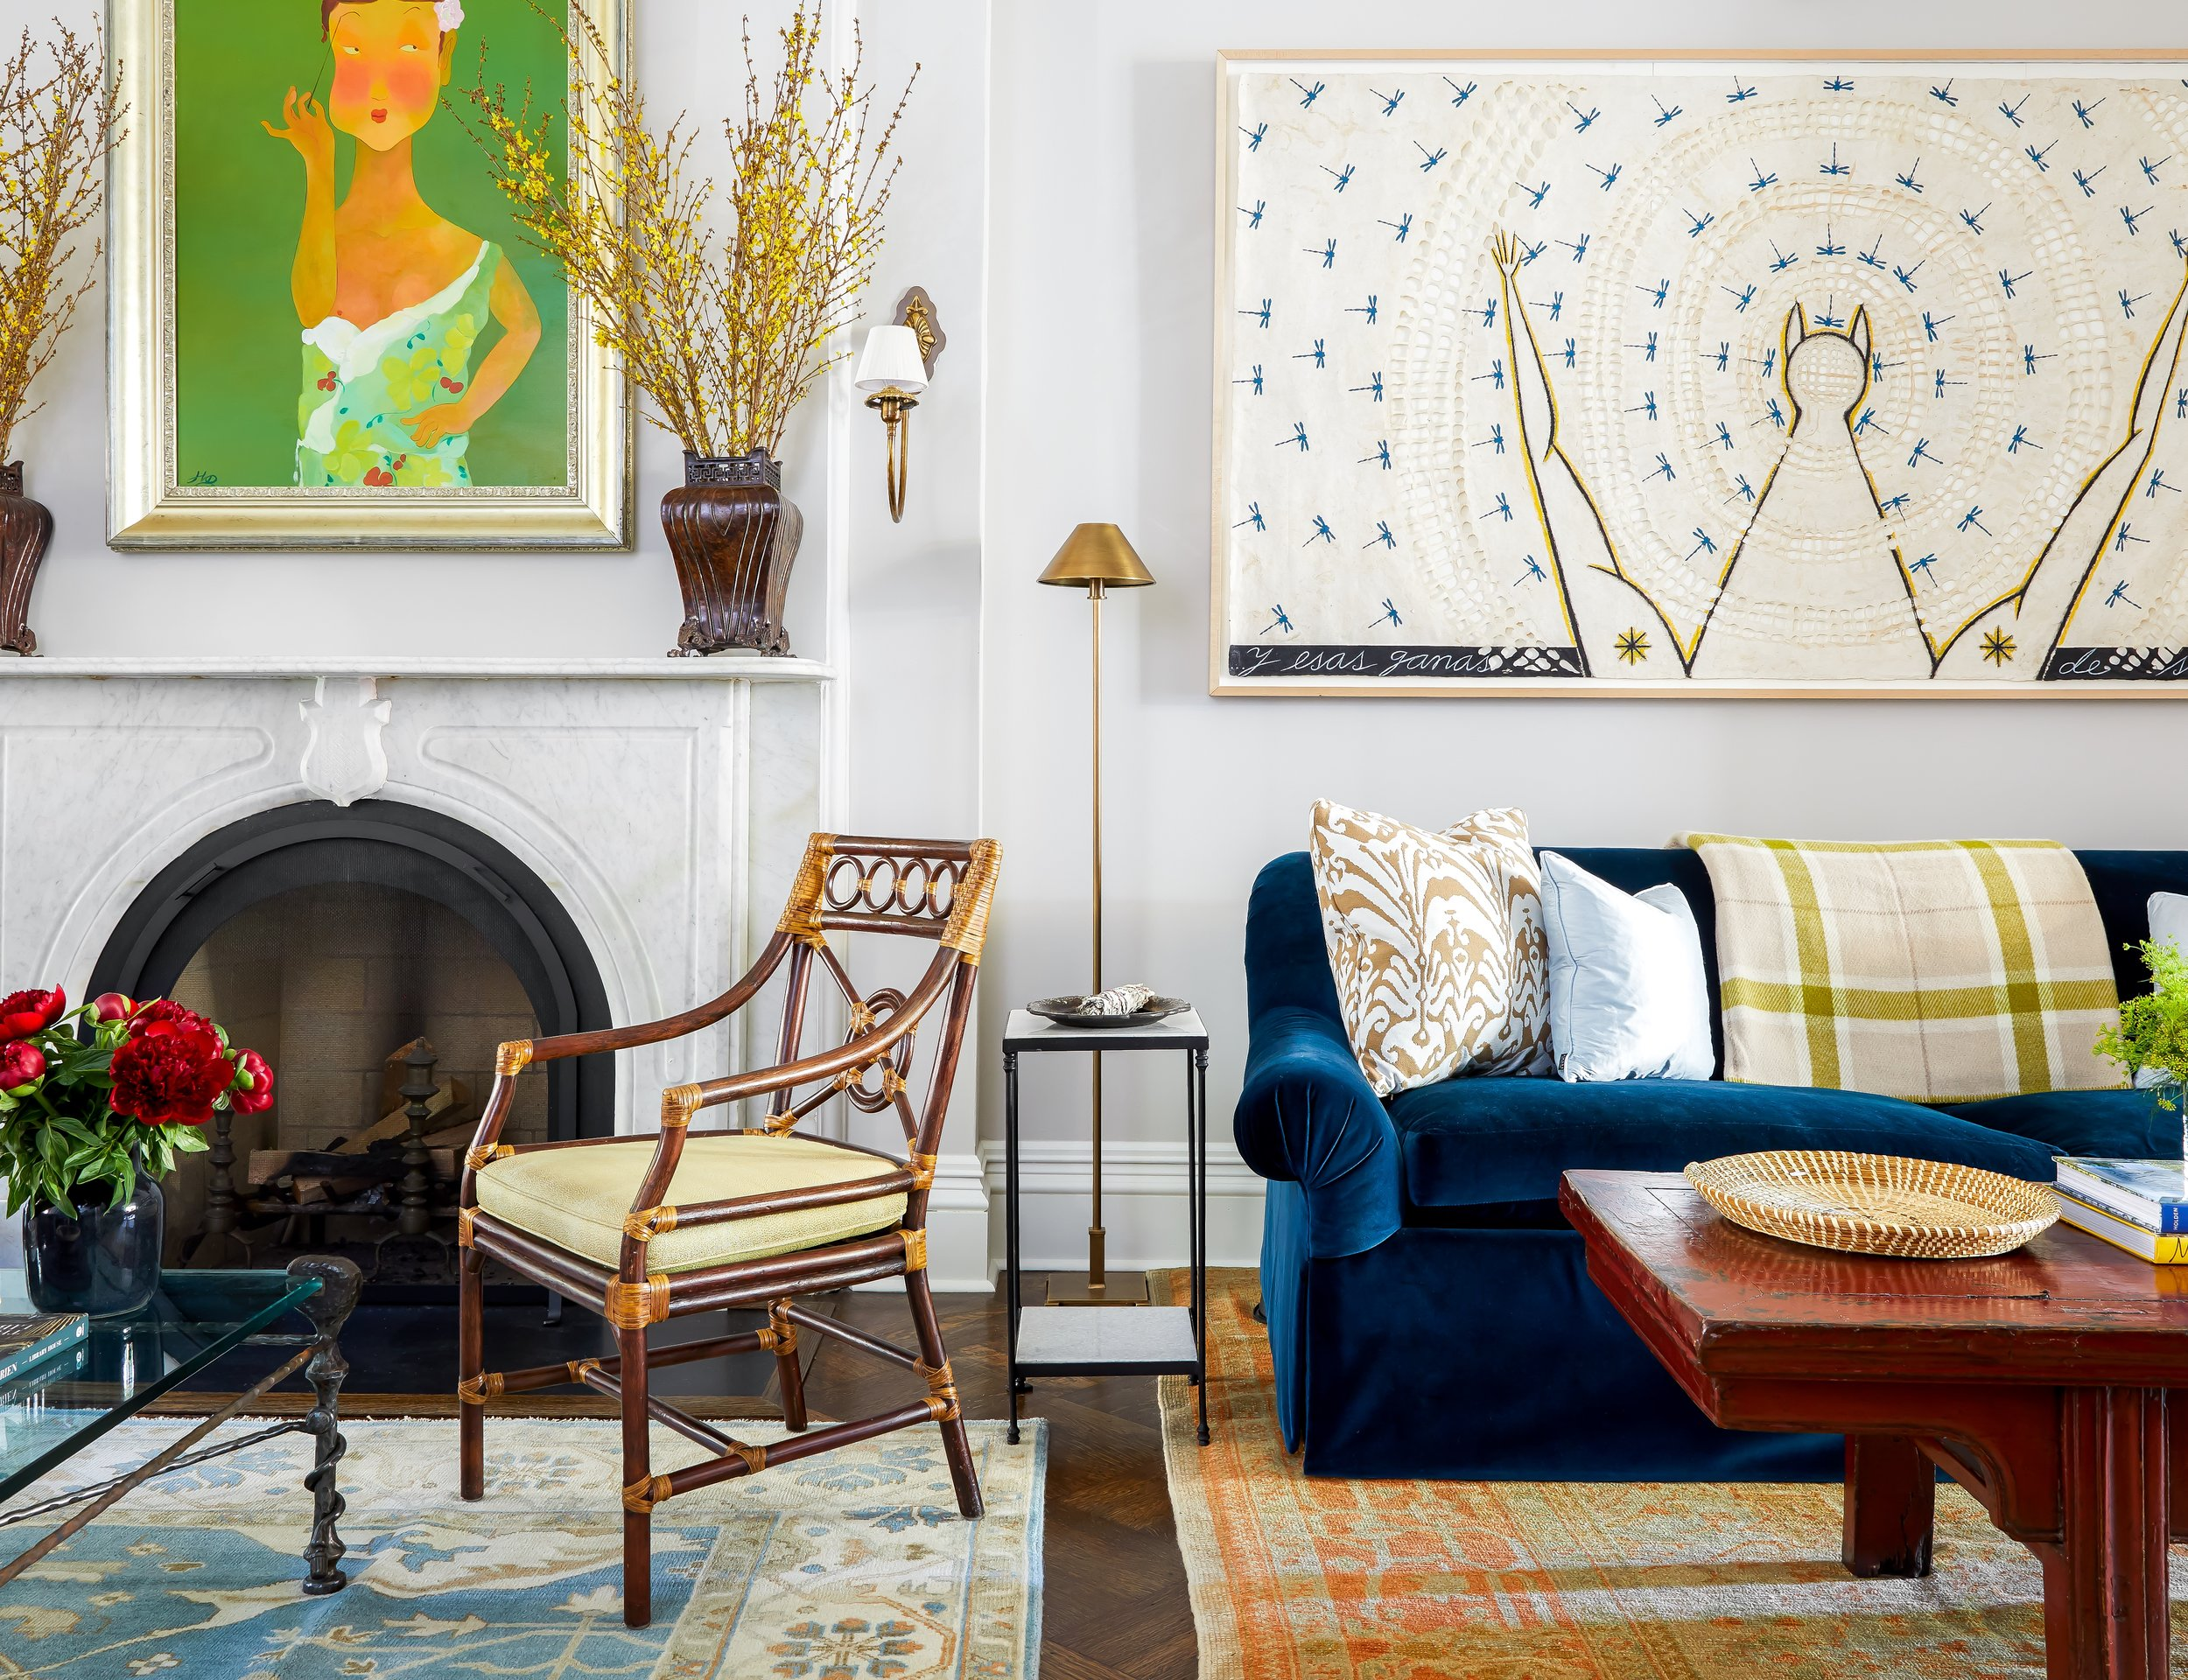 A colorful mix of antique, vintage, and custom pieces create a fun and soulful Parlor in this Brooklyn Townhouse featured in House Beautiful. An antique marble mantel was sourced to appropriately restore the character of this 1860s brownstone. A vintage iron and glass coffee table reminiscent of Giacometti sits in front one of the seven newly restored fireplaces with a vintage bamboo chair in a yellow sink from The Antique and Artisan Gallery in Stamford, CT. A custom rolled arm sofa in a plush baltic blue cotton velvet provides maximum comfort in front of an early 19th century Q'ing Dynasty Shandong Red Lacquer Tea Table from Hampton Briggs Antiques. Art by Cuban artist José Bedia.